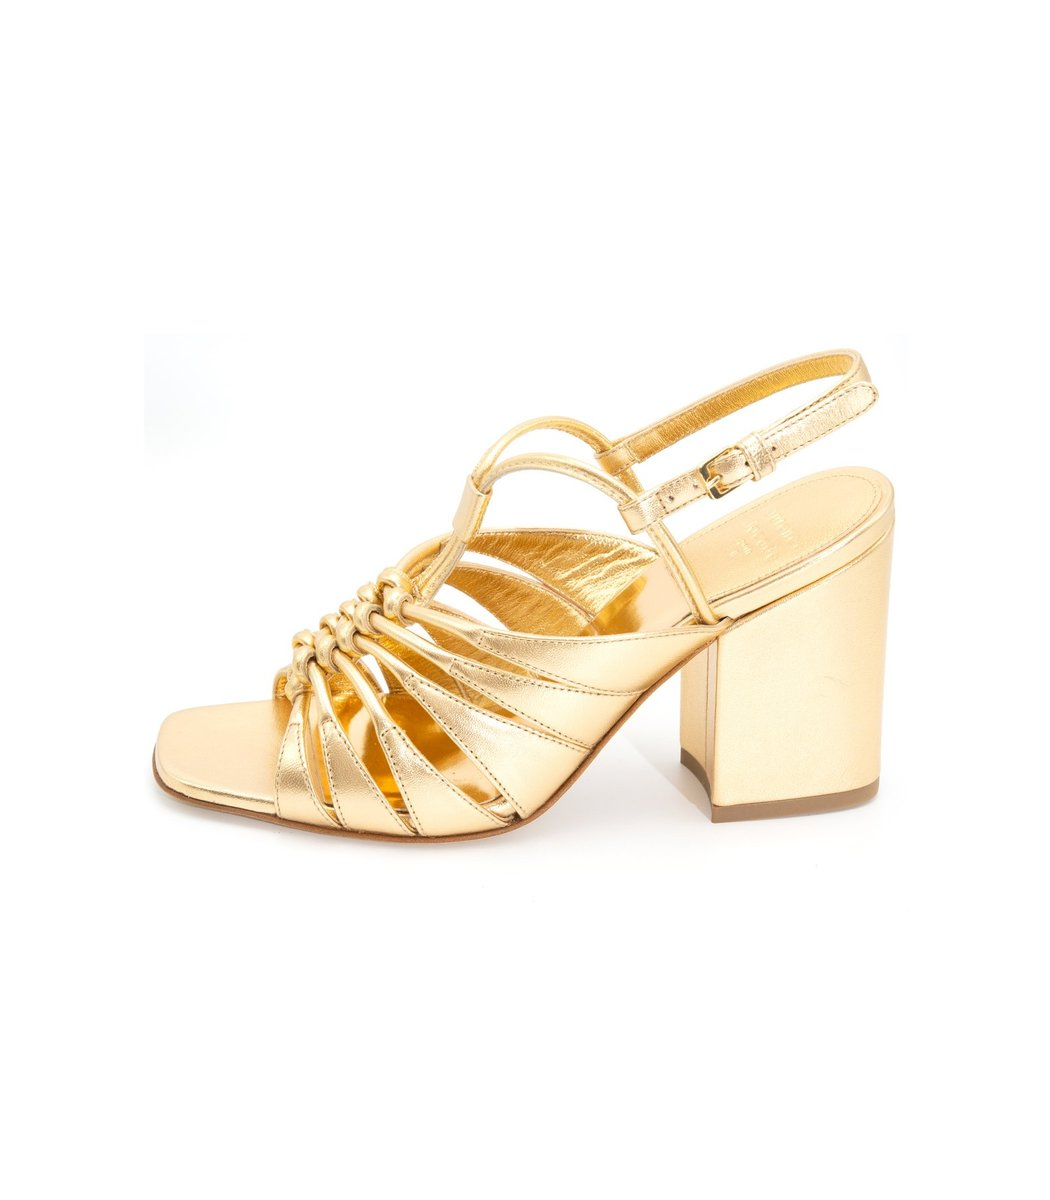 Laurence Dacade The Burma Day Party Sandal in Gold